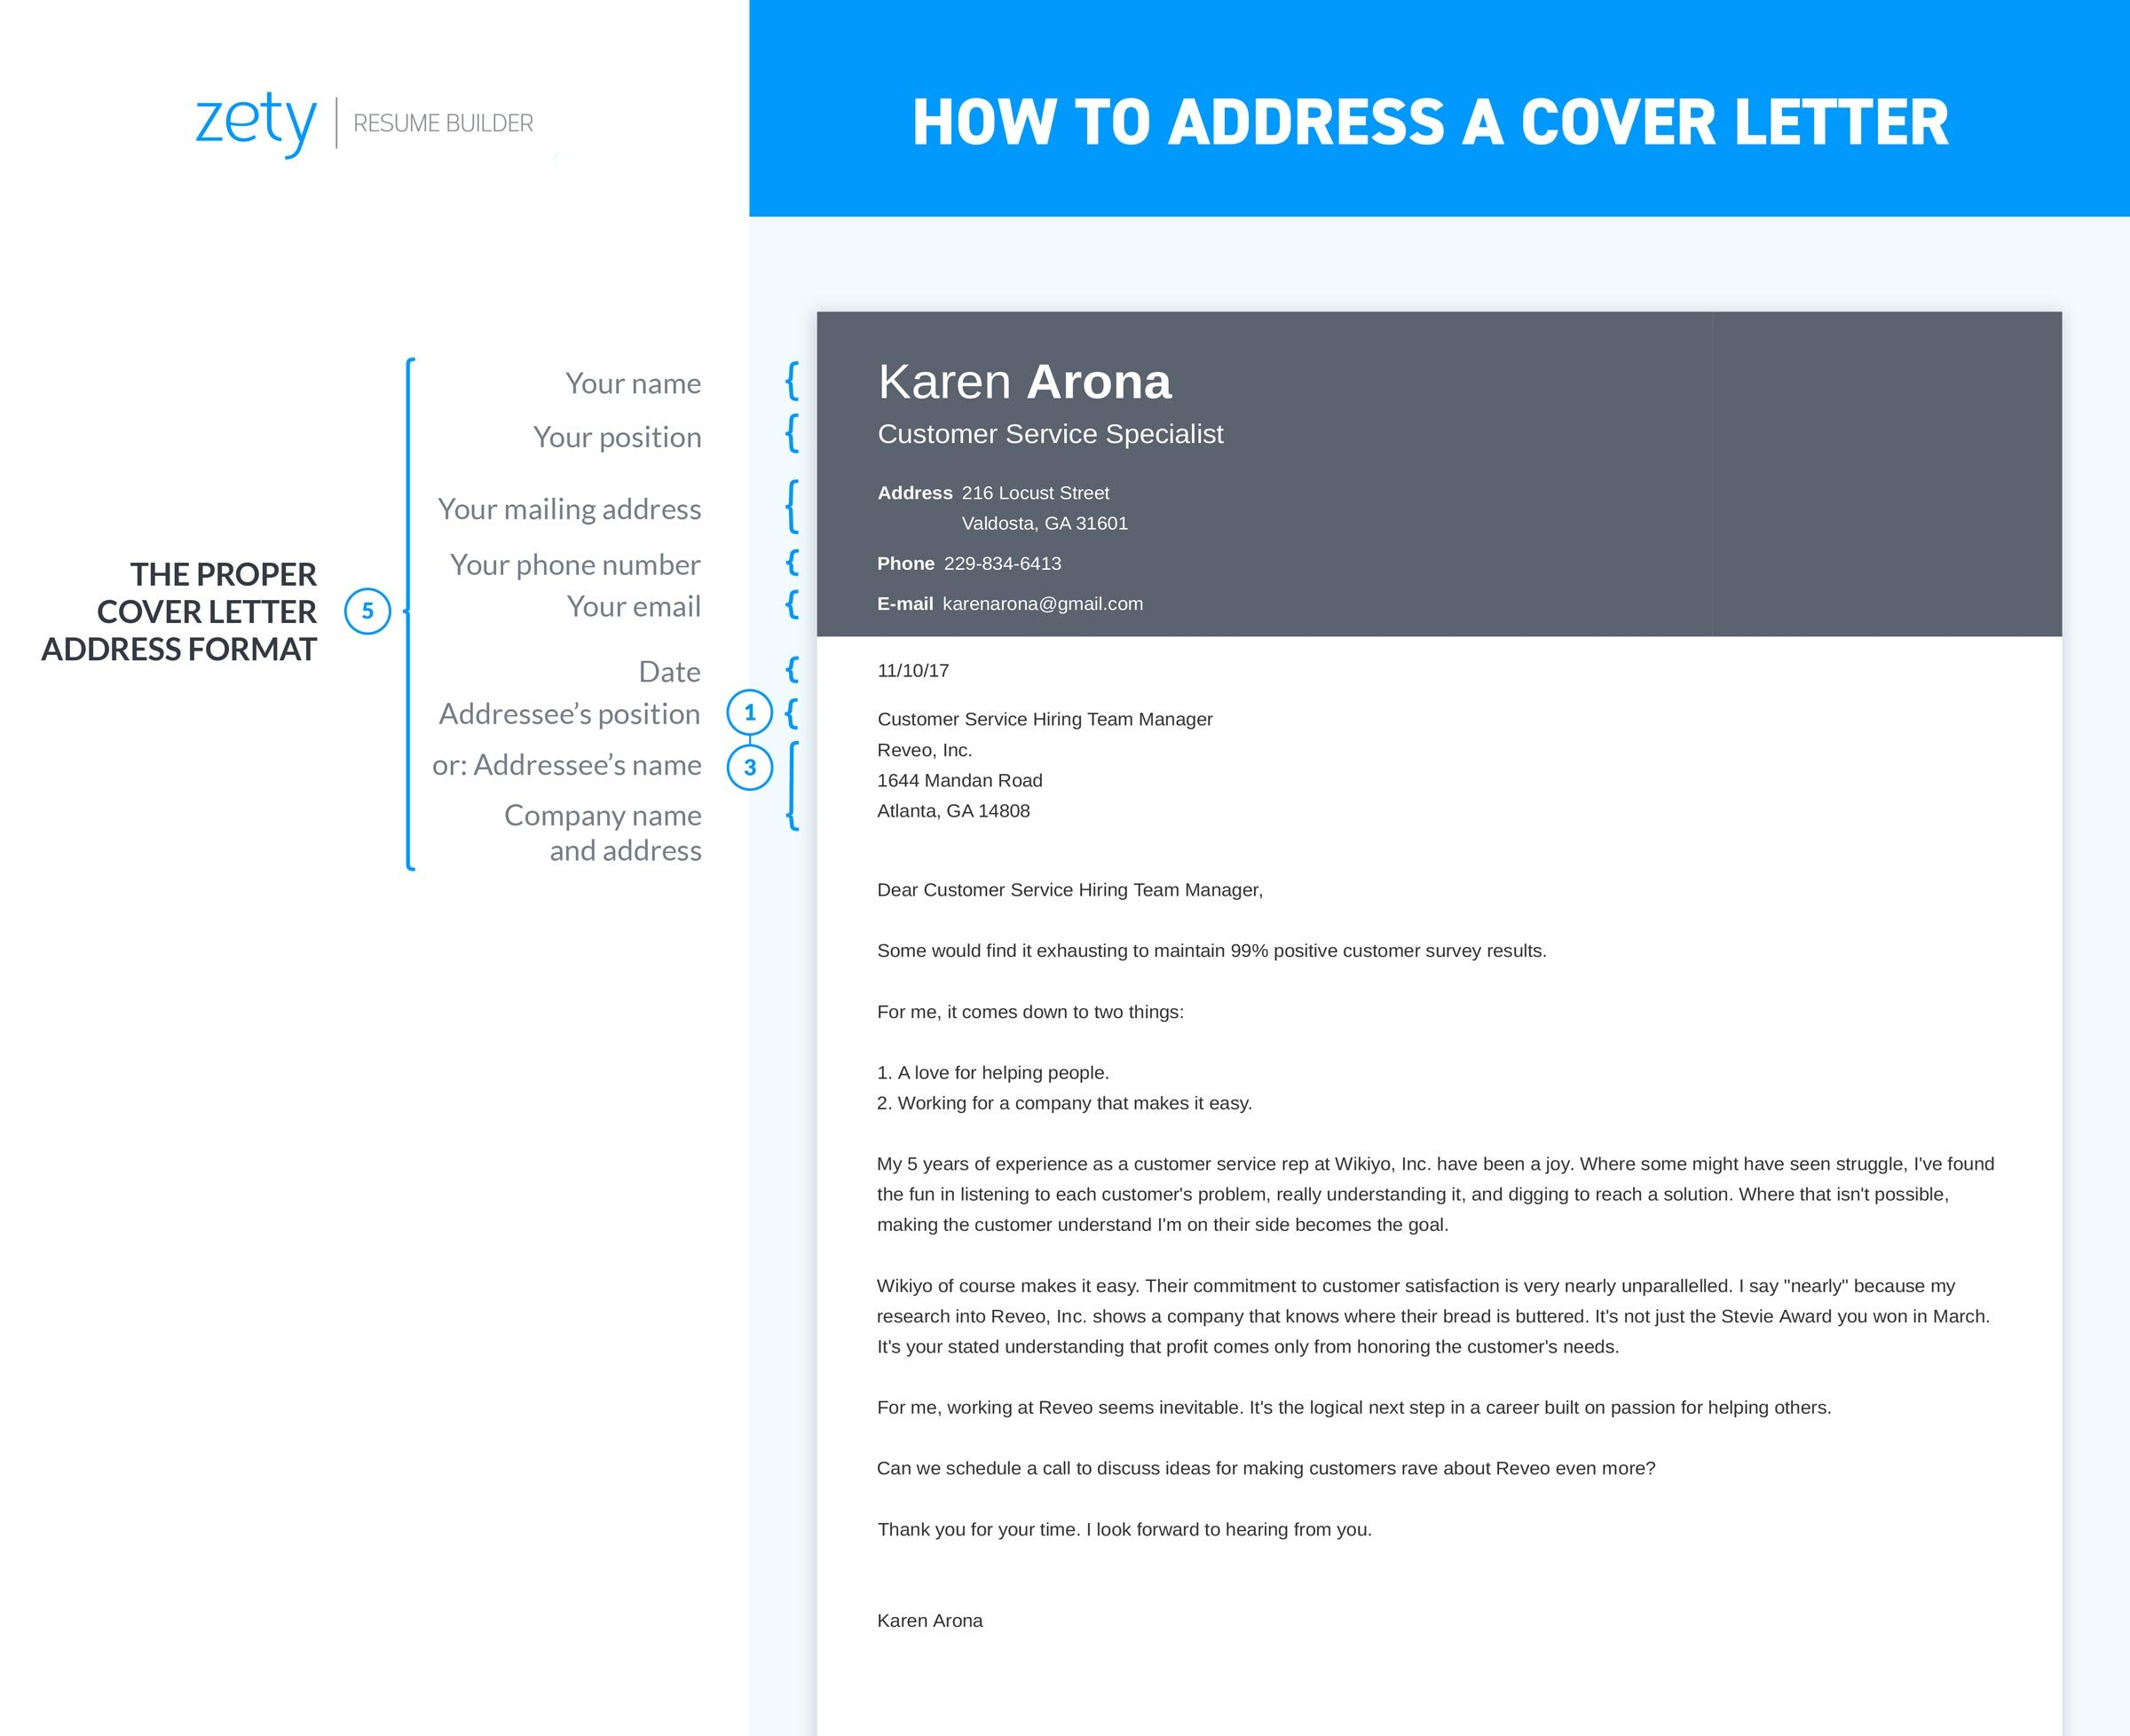 How to address a cover letter sample guide 20 examples for How to address employer in cover letter